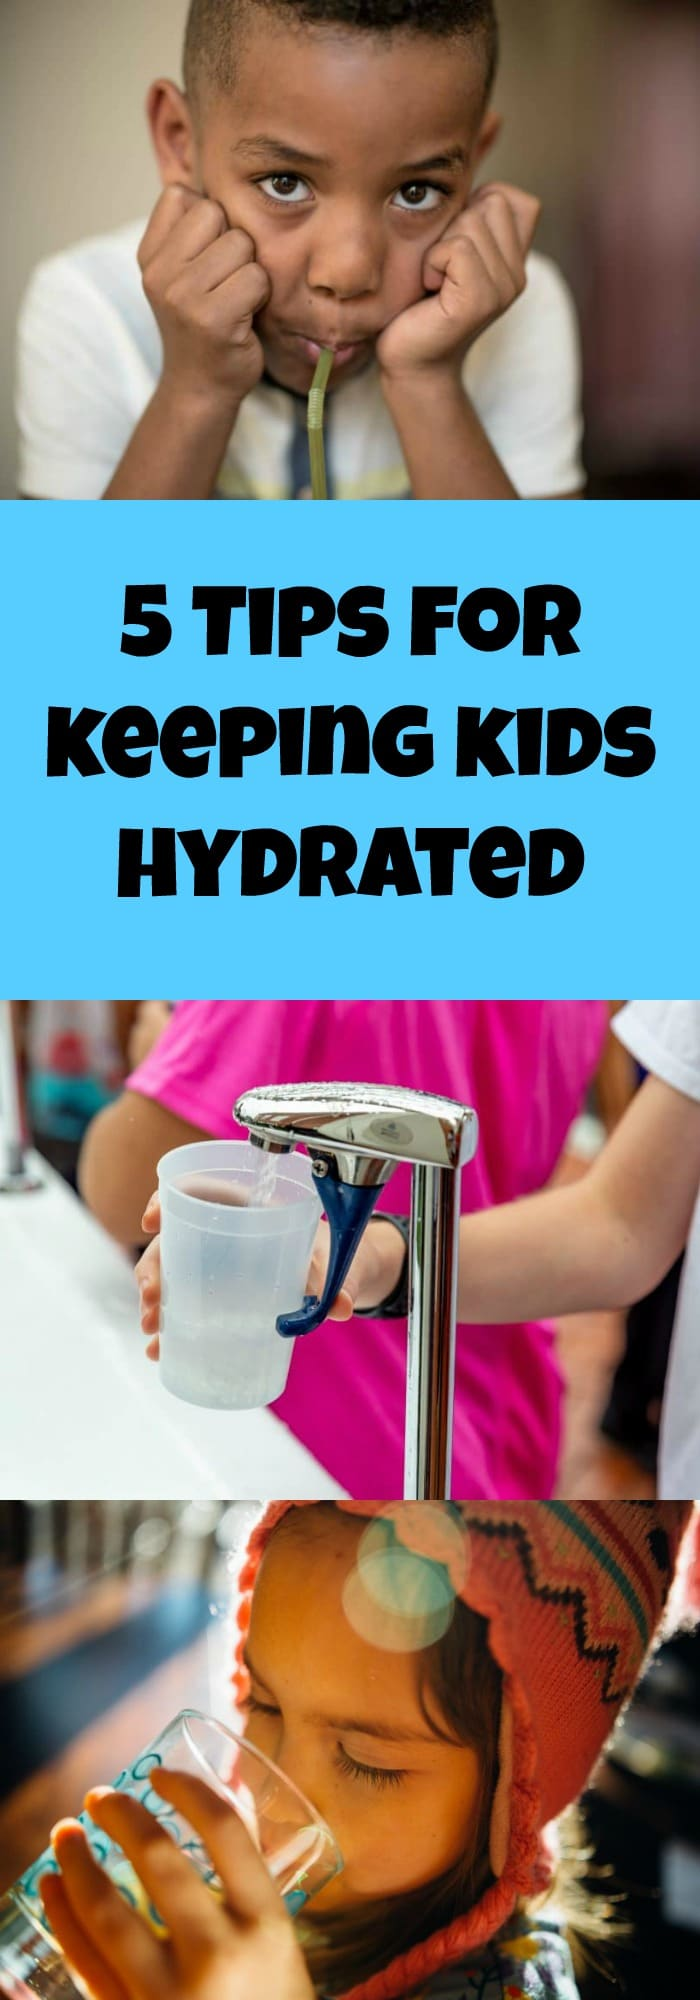 5 Tips for Keeping Kids Hydrated